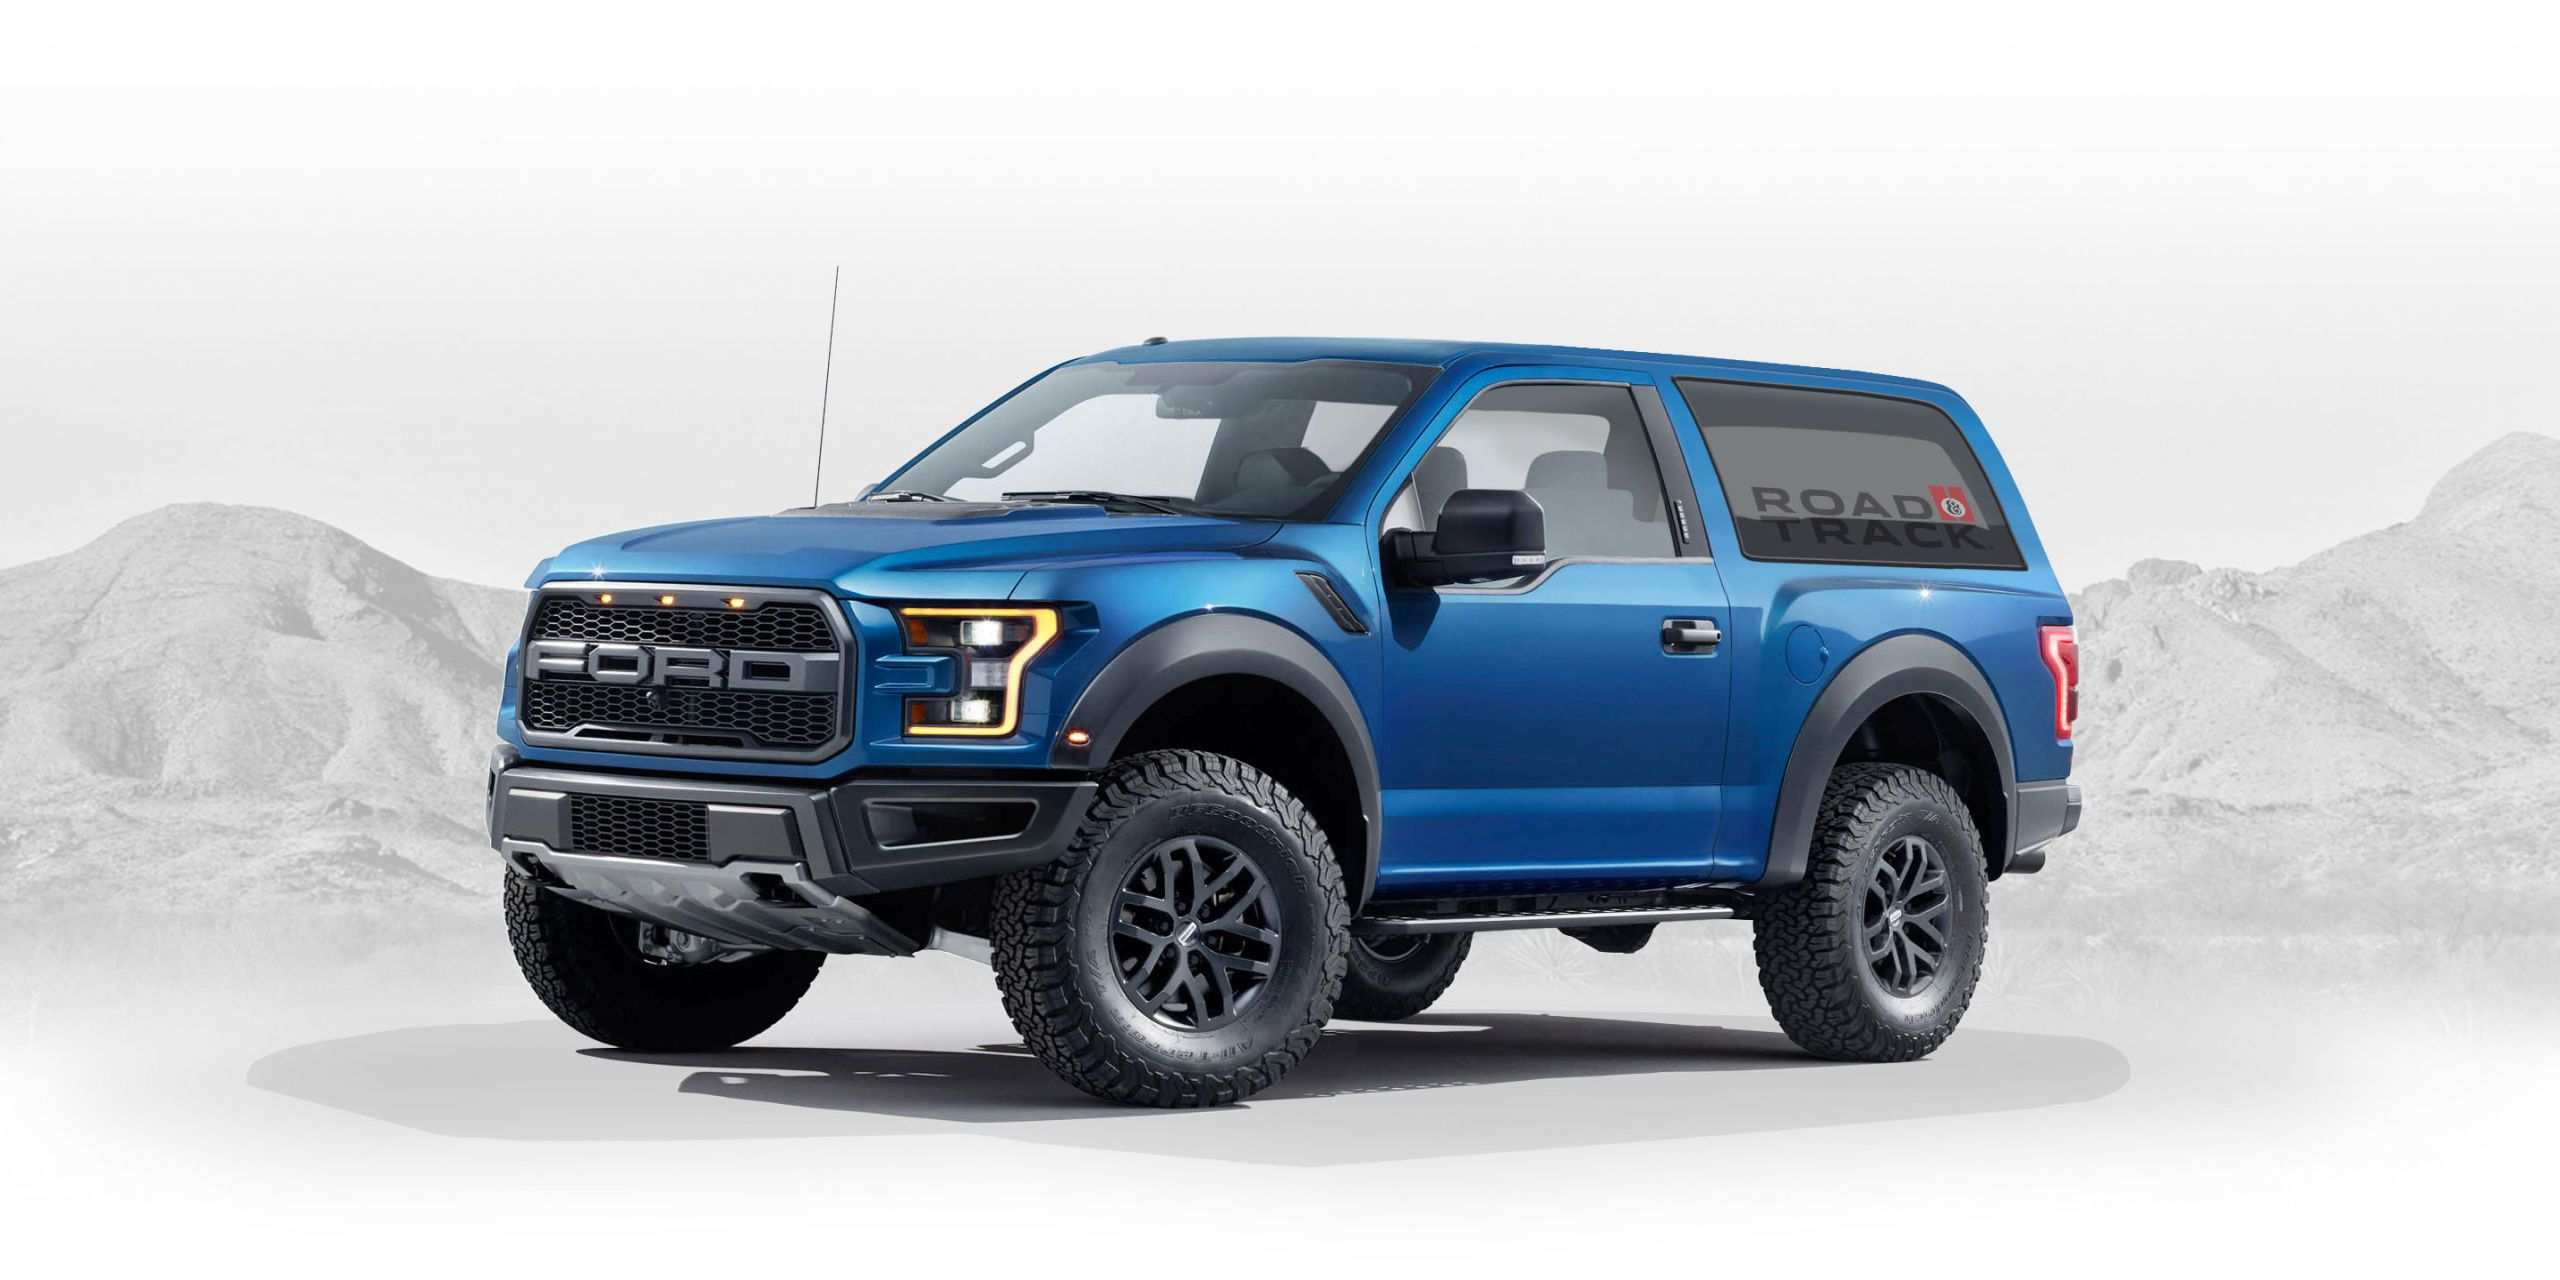 96 Concept of 2020 Ford Bronco 2018 Specs and Review by 2020 Ford Bronco 2018